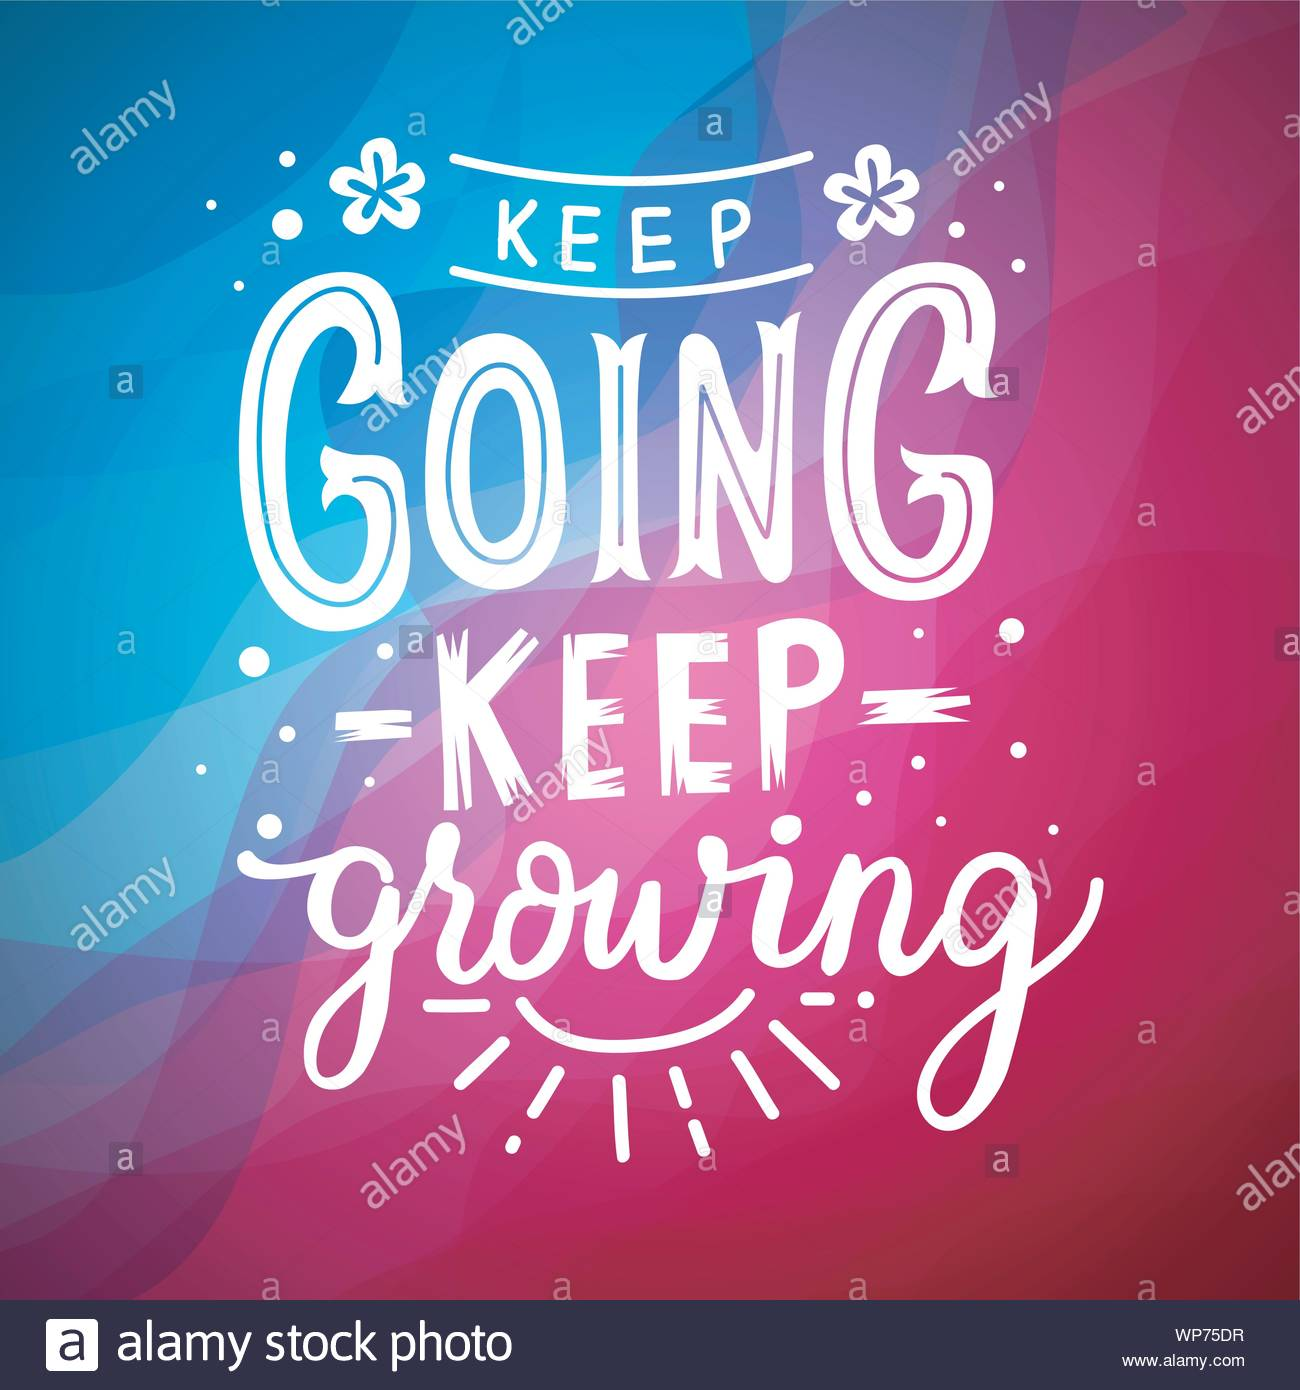 Keep Going Keep Growing Inspirational Quotes And Motivational Art ...